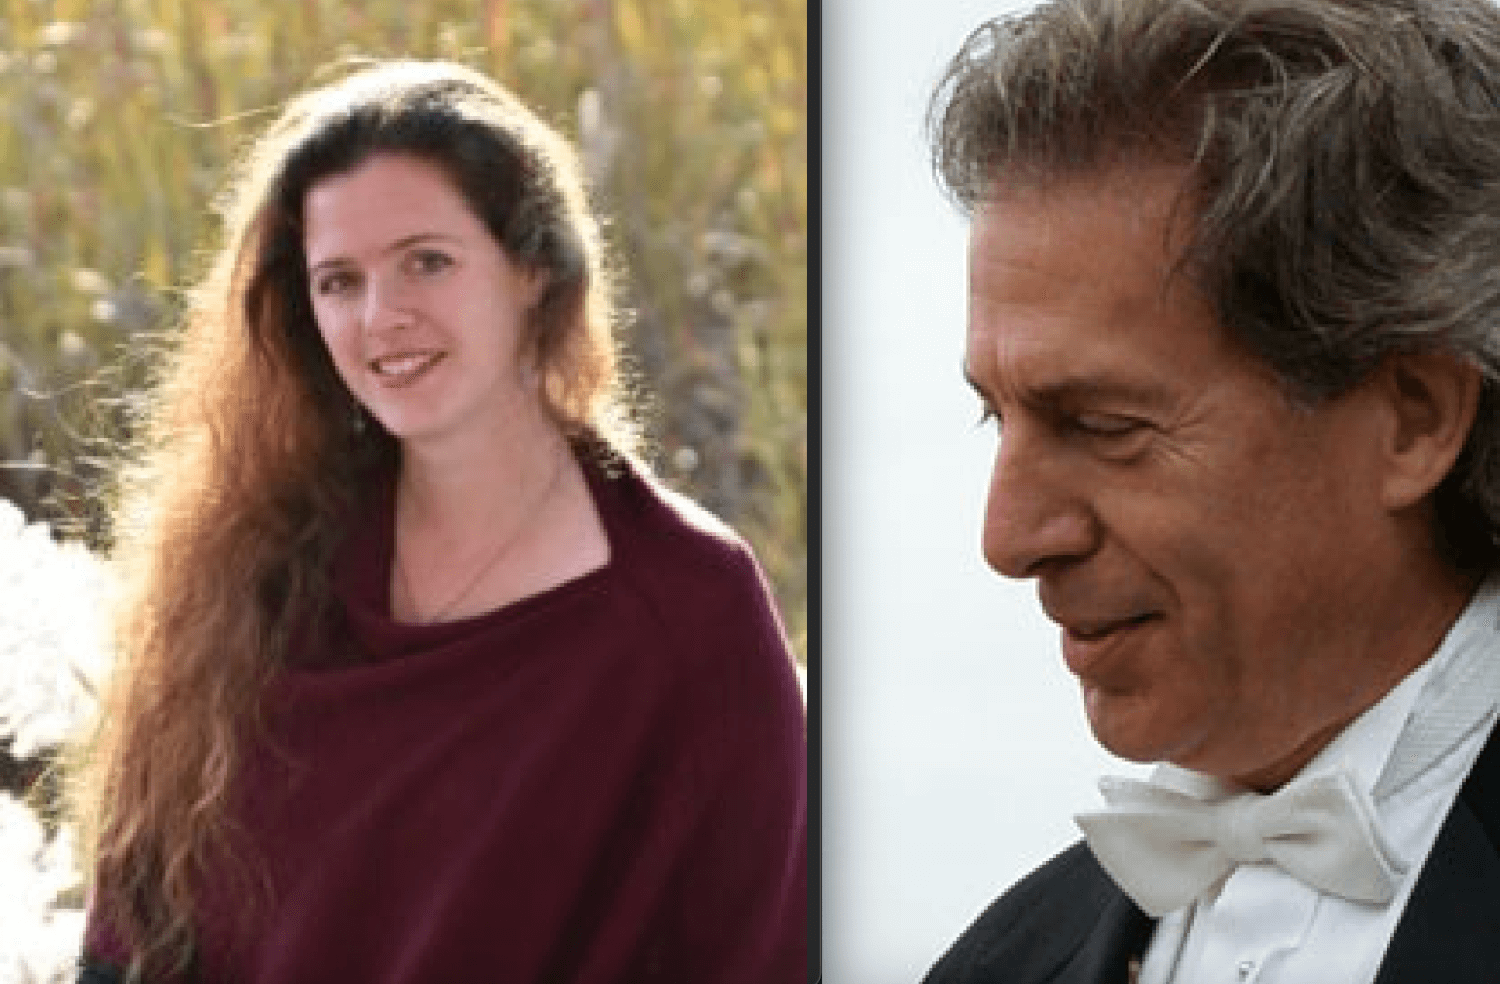 May 11 - RiverArts Salon: This Year's National Music Festival with Richard Rosenberg and Caitlin Patton